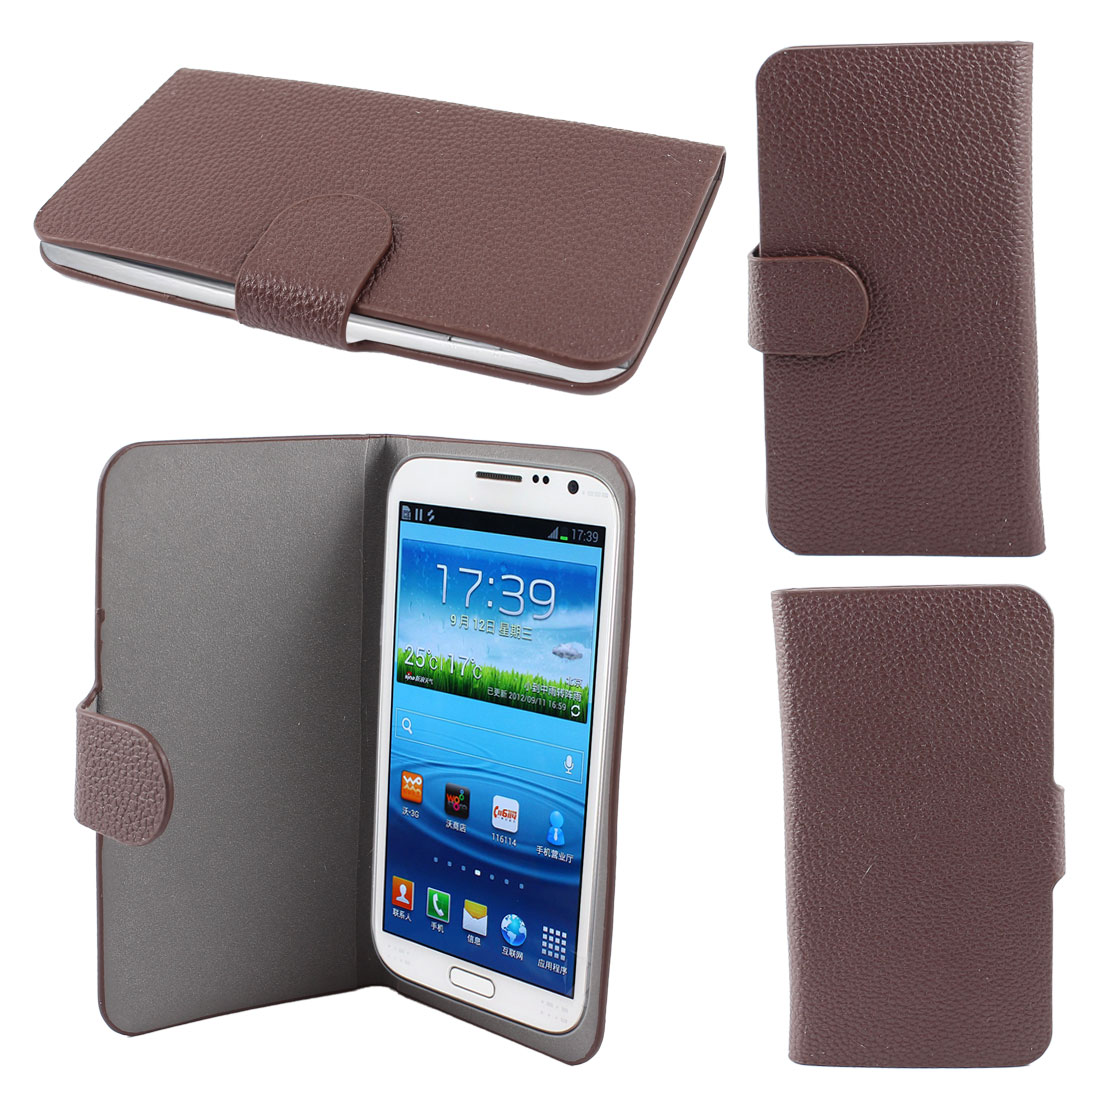 "PU Leather Self Adhesive Case Cover Card Holder Chocolate Color for 4.8"" Phone"